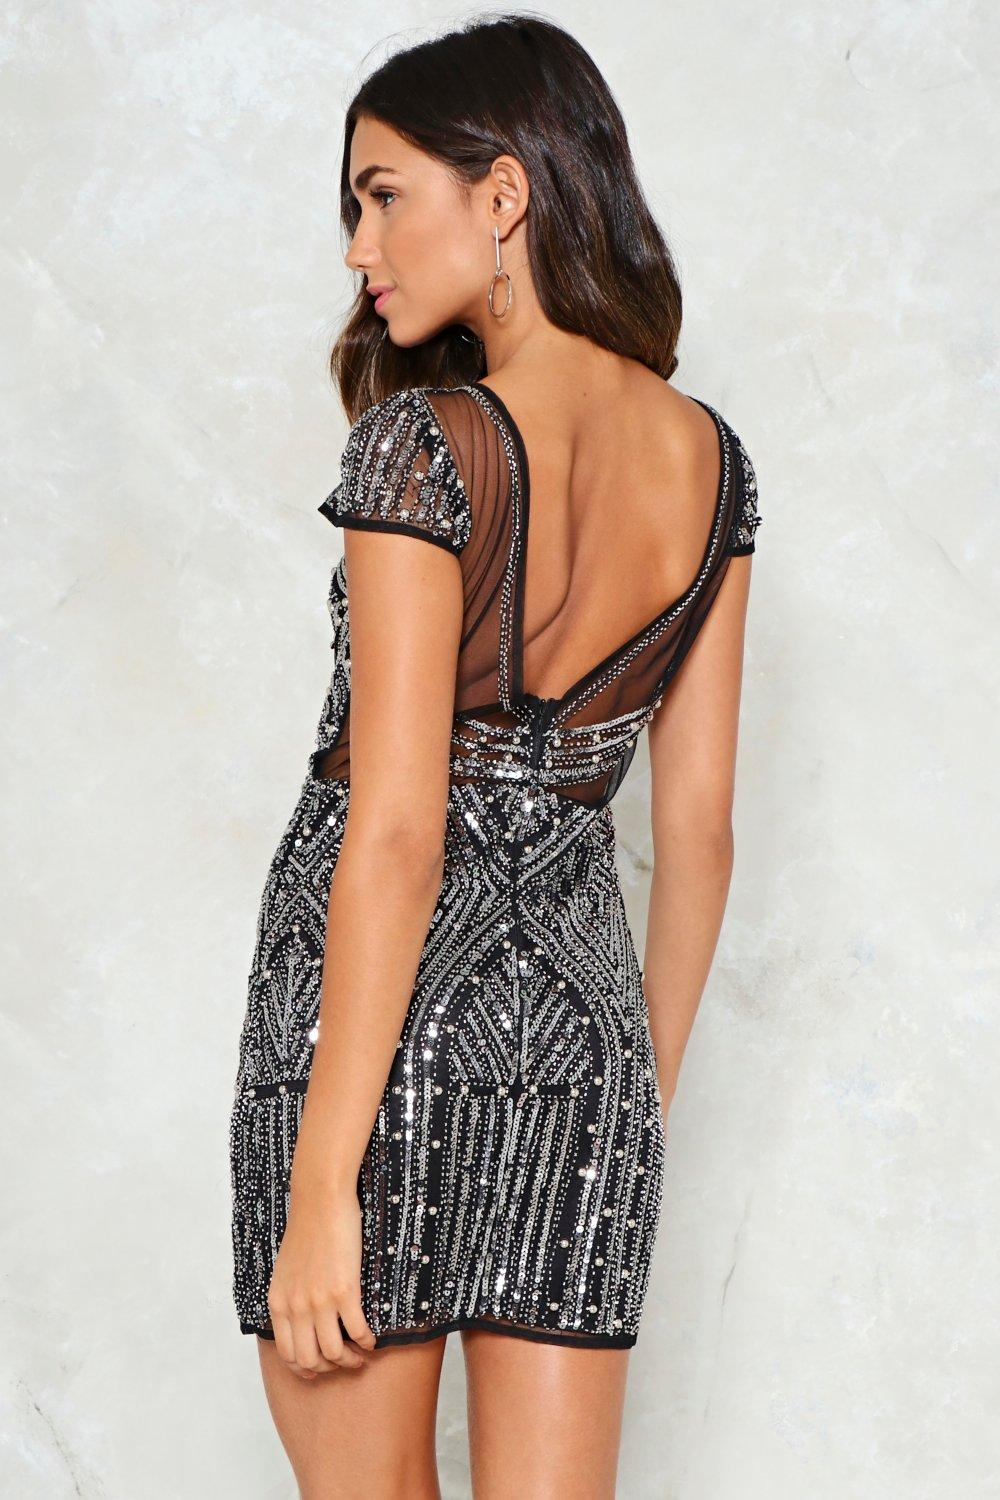 711d6f79bc3593 Workin My Way Back To You Sequin Dress Clothes At Nasty Gal. Womens Black  ...